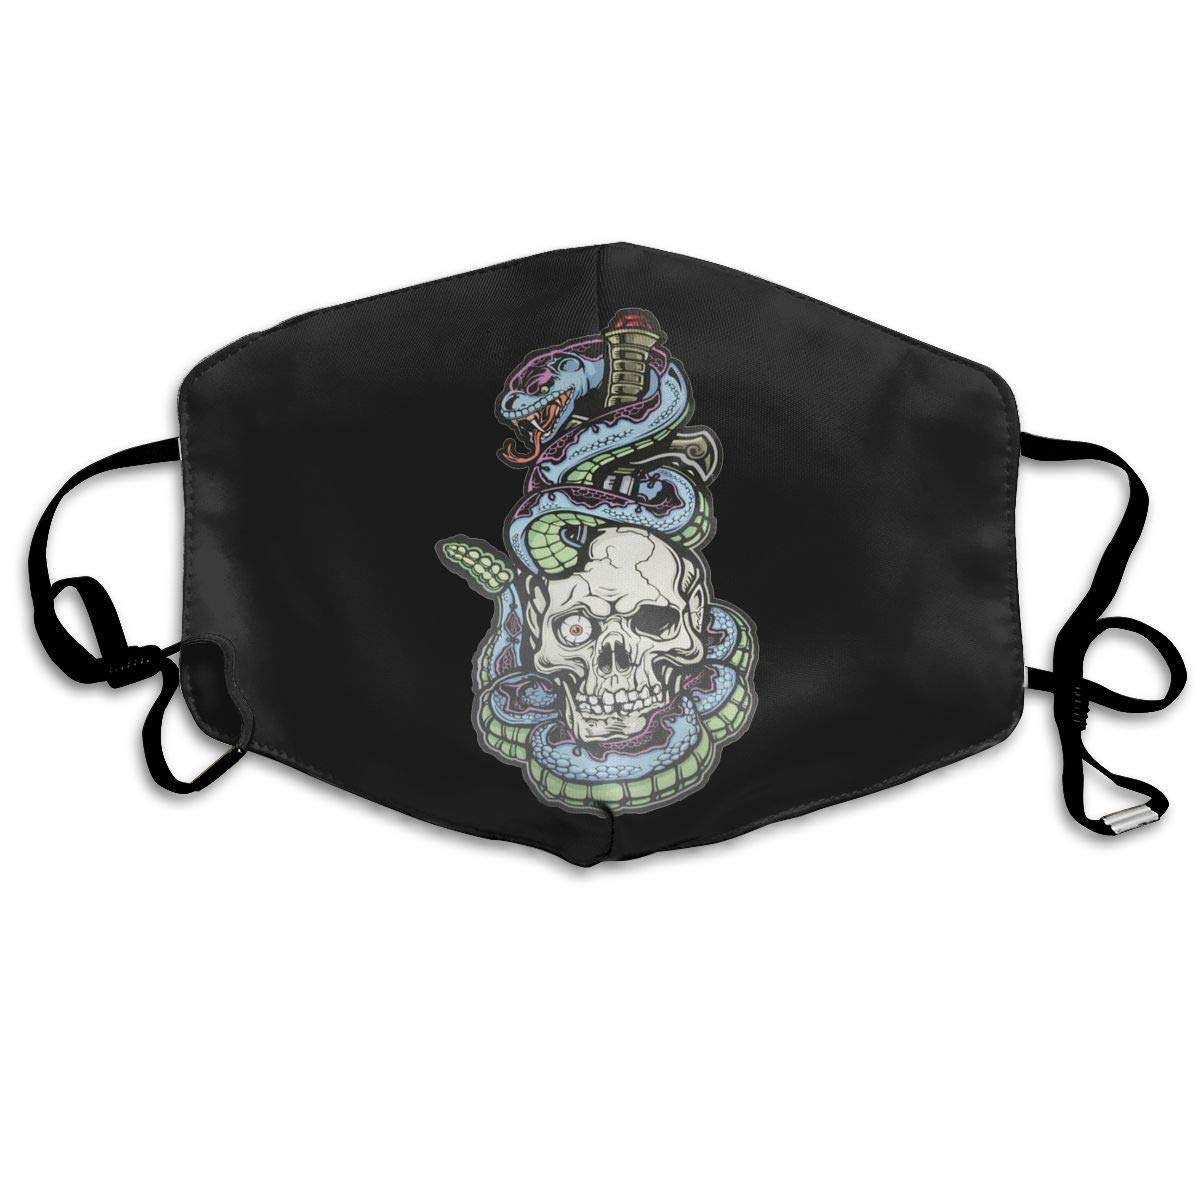 Mouth <font><b>Mask</b></font> Surround Skull <font><b>Avatar</b></font> Print <font><b>Masks</b></font> - Breathable Adjustable Windproof Mouth-Muffle, Camping Running for Women and Men image